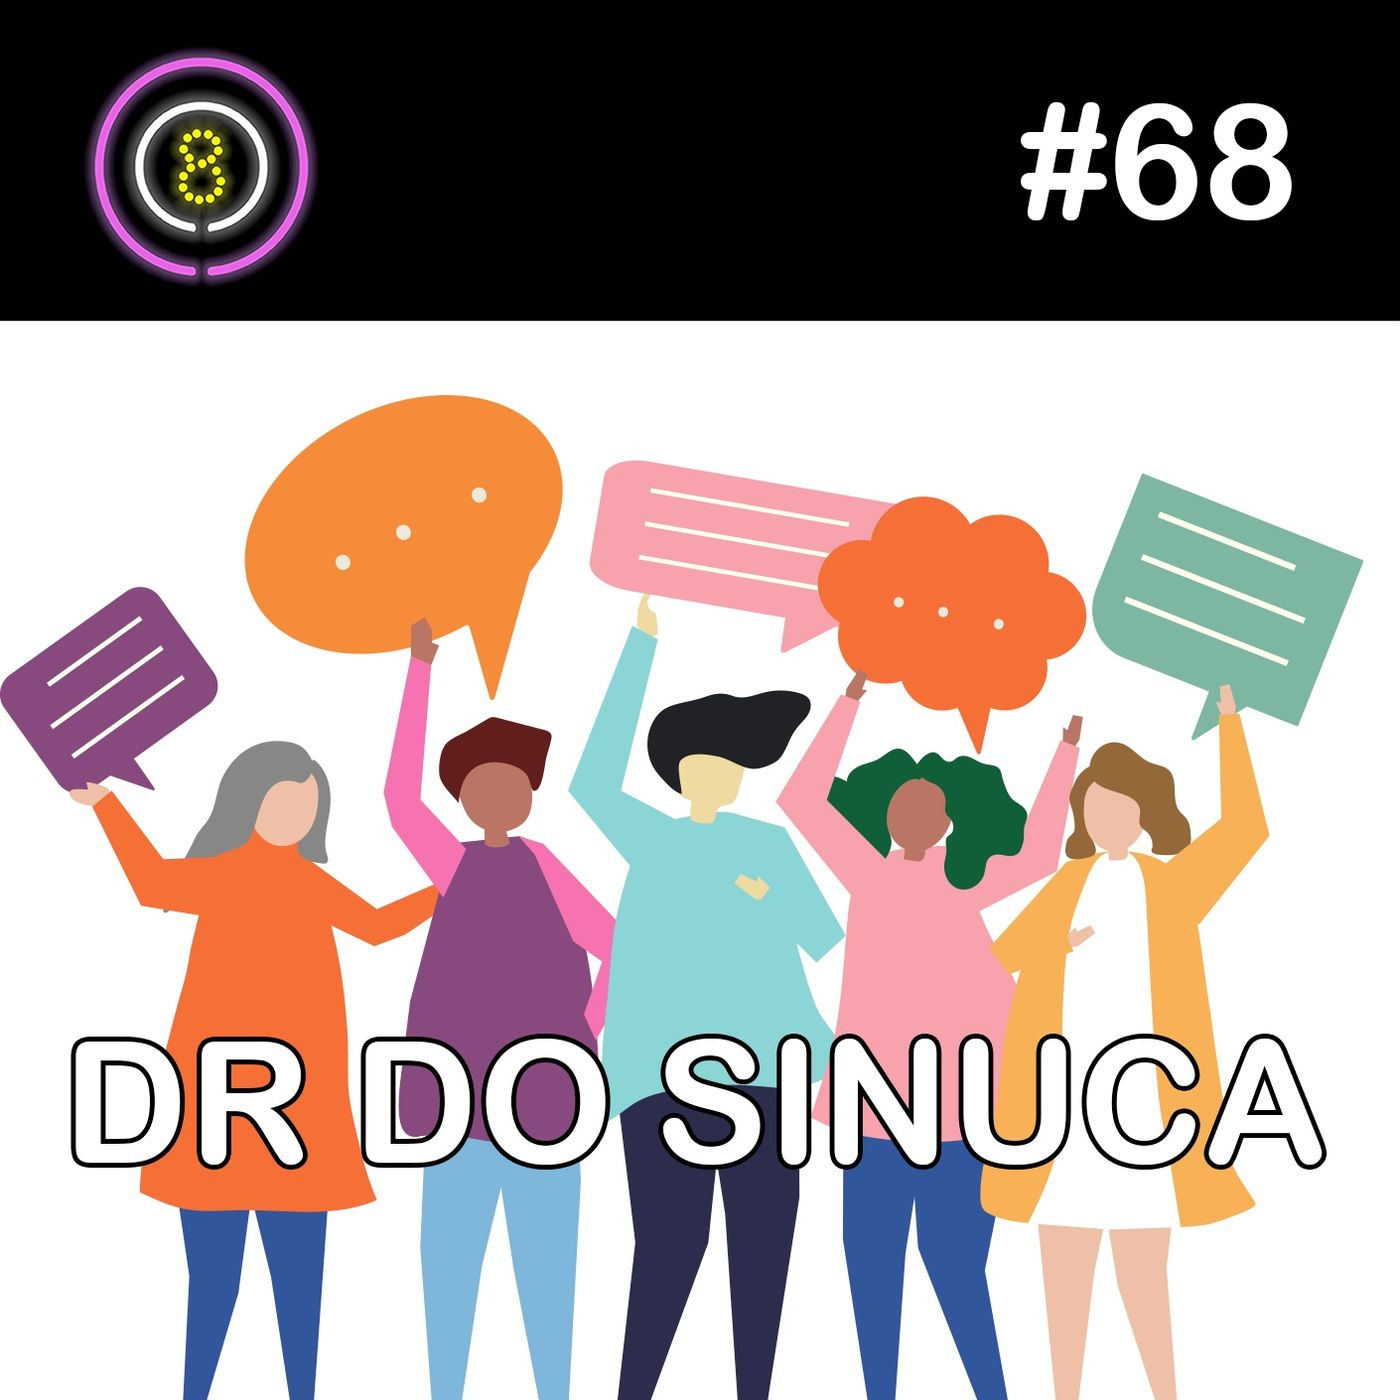 #68 - DR do Sinuca